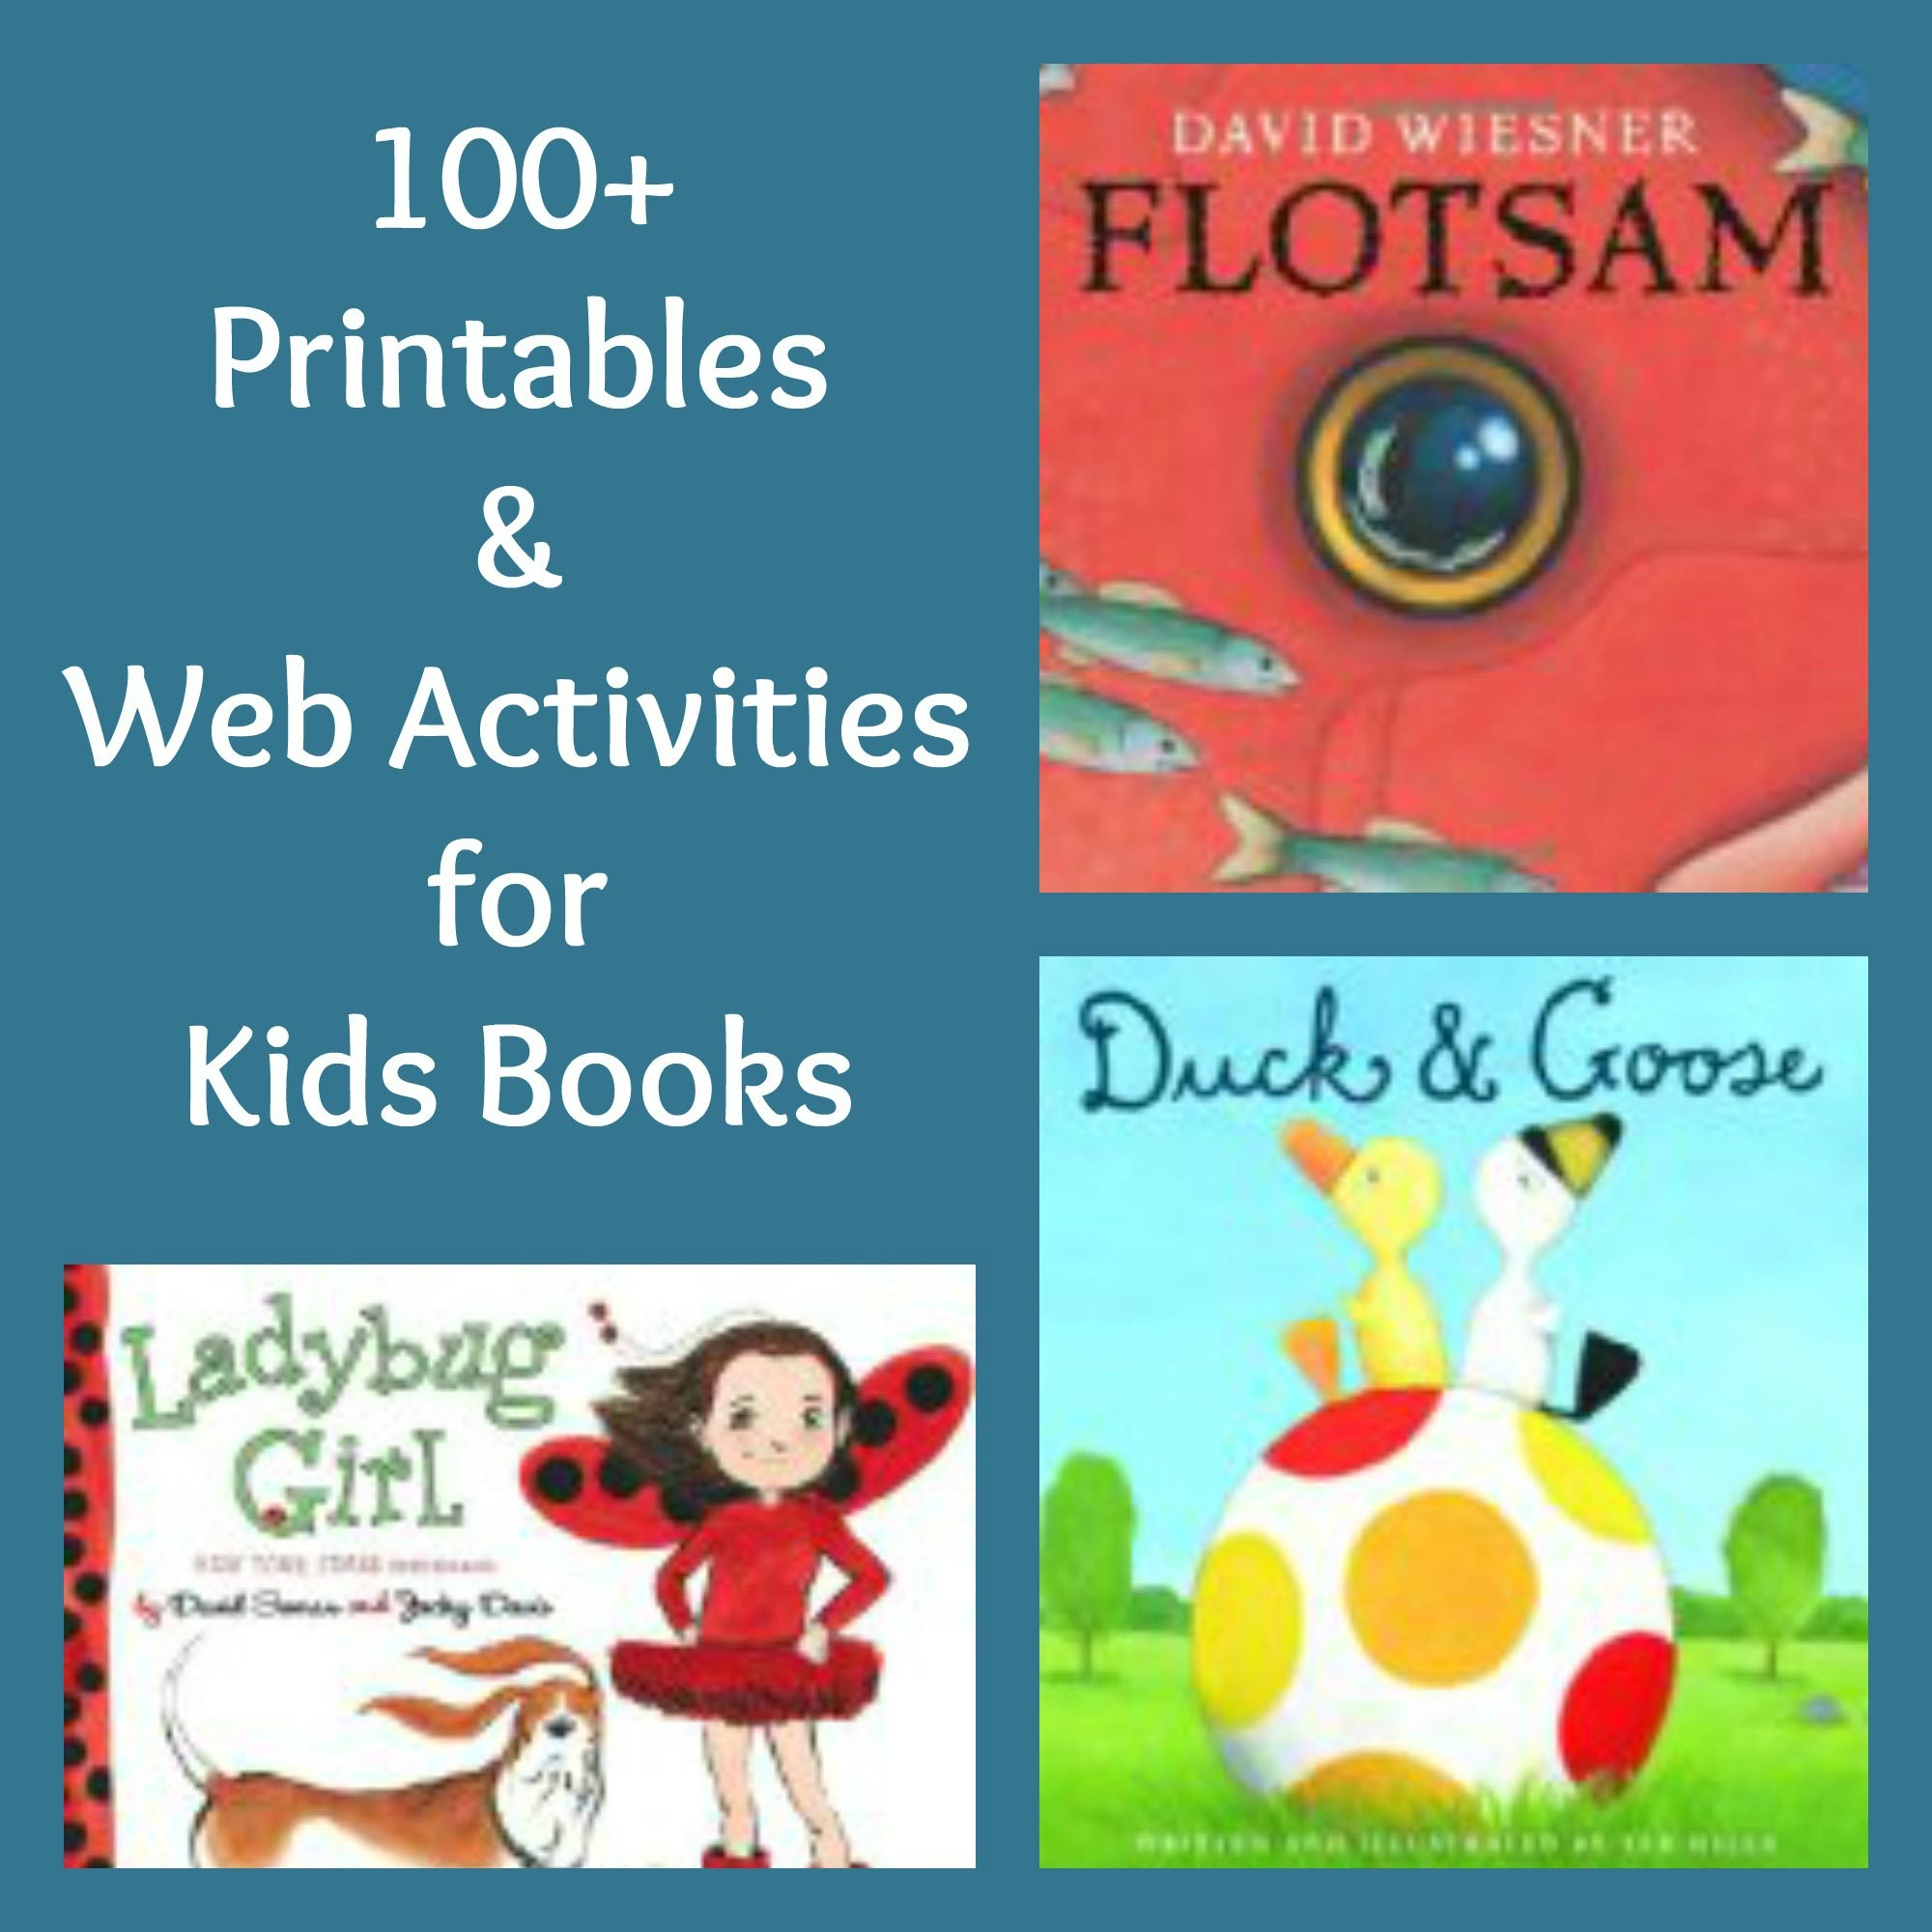 50+ Free Read Aloud Books Online - Edventures With Kids - Free Printable Stories For Preschoolers